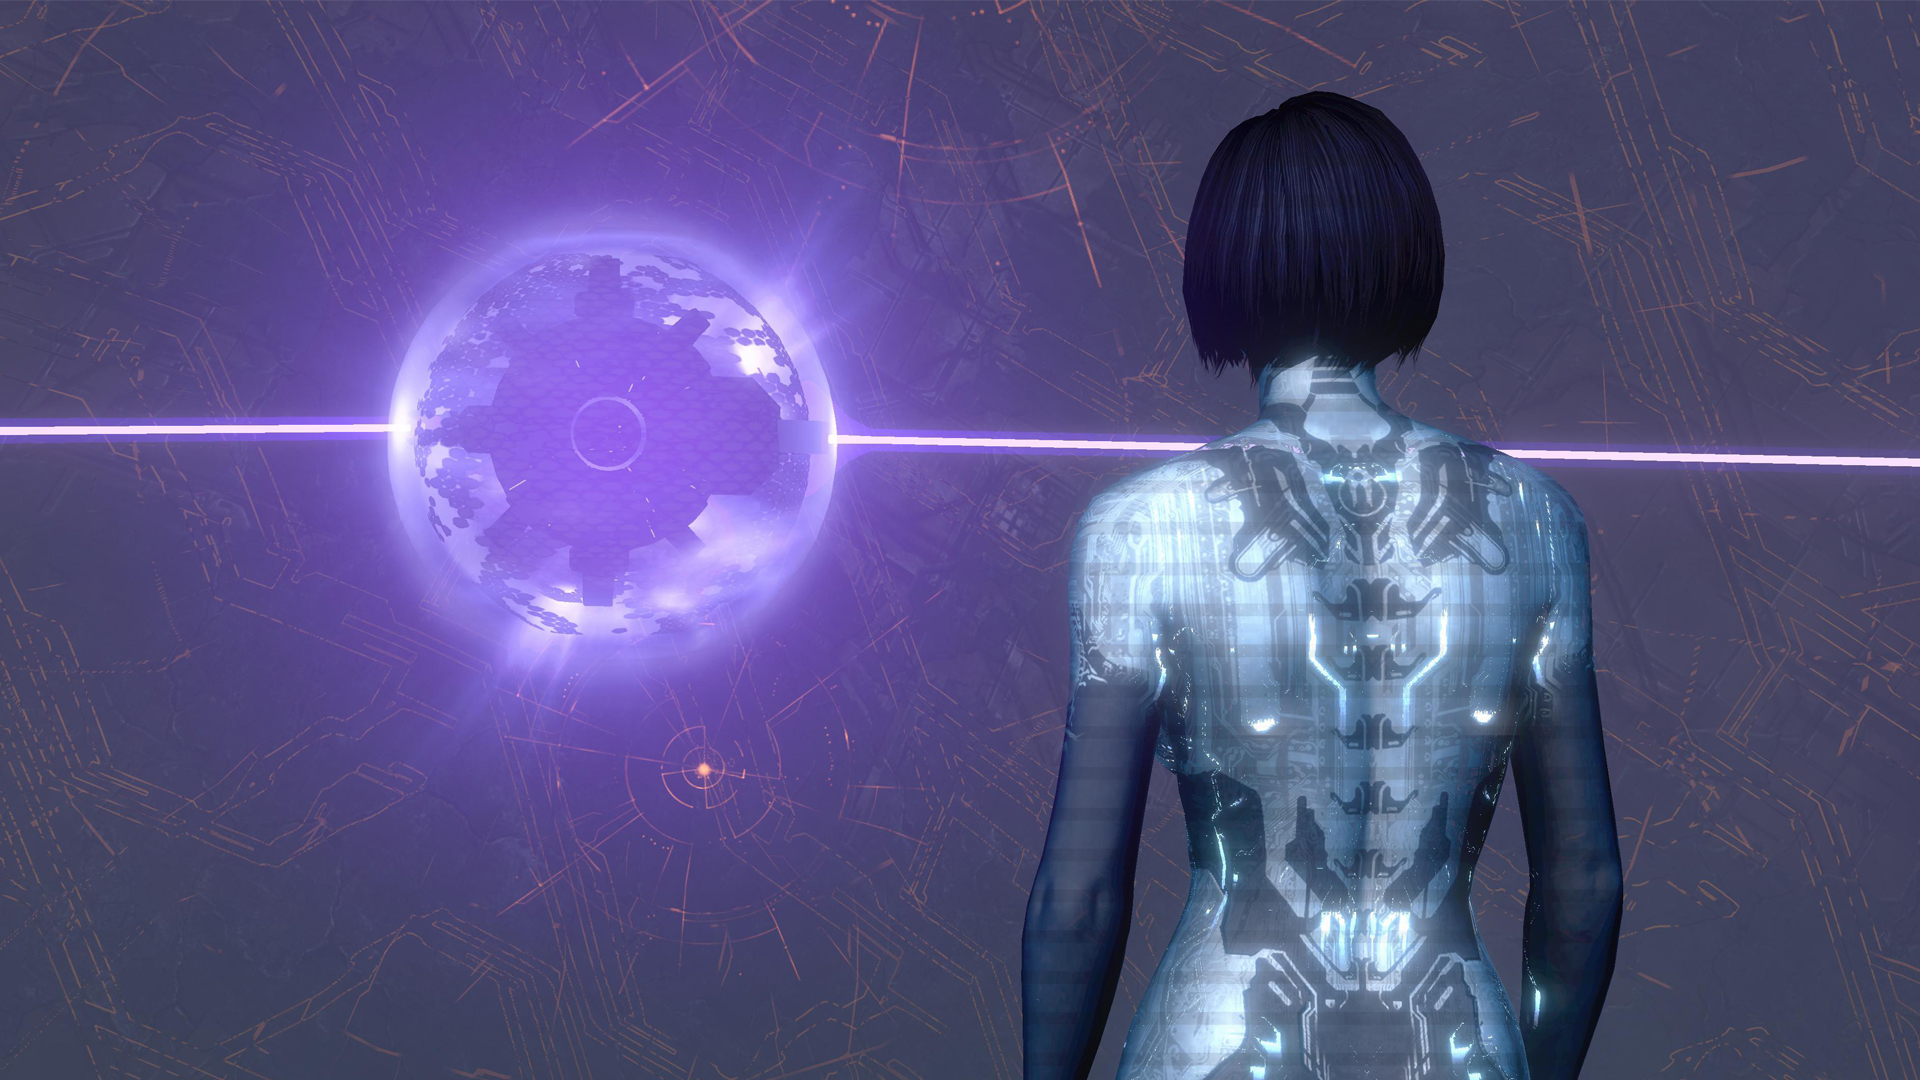 Top cortana wallpaper find full wallpapers for Where can i find wallpaper